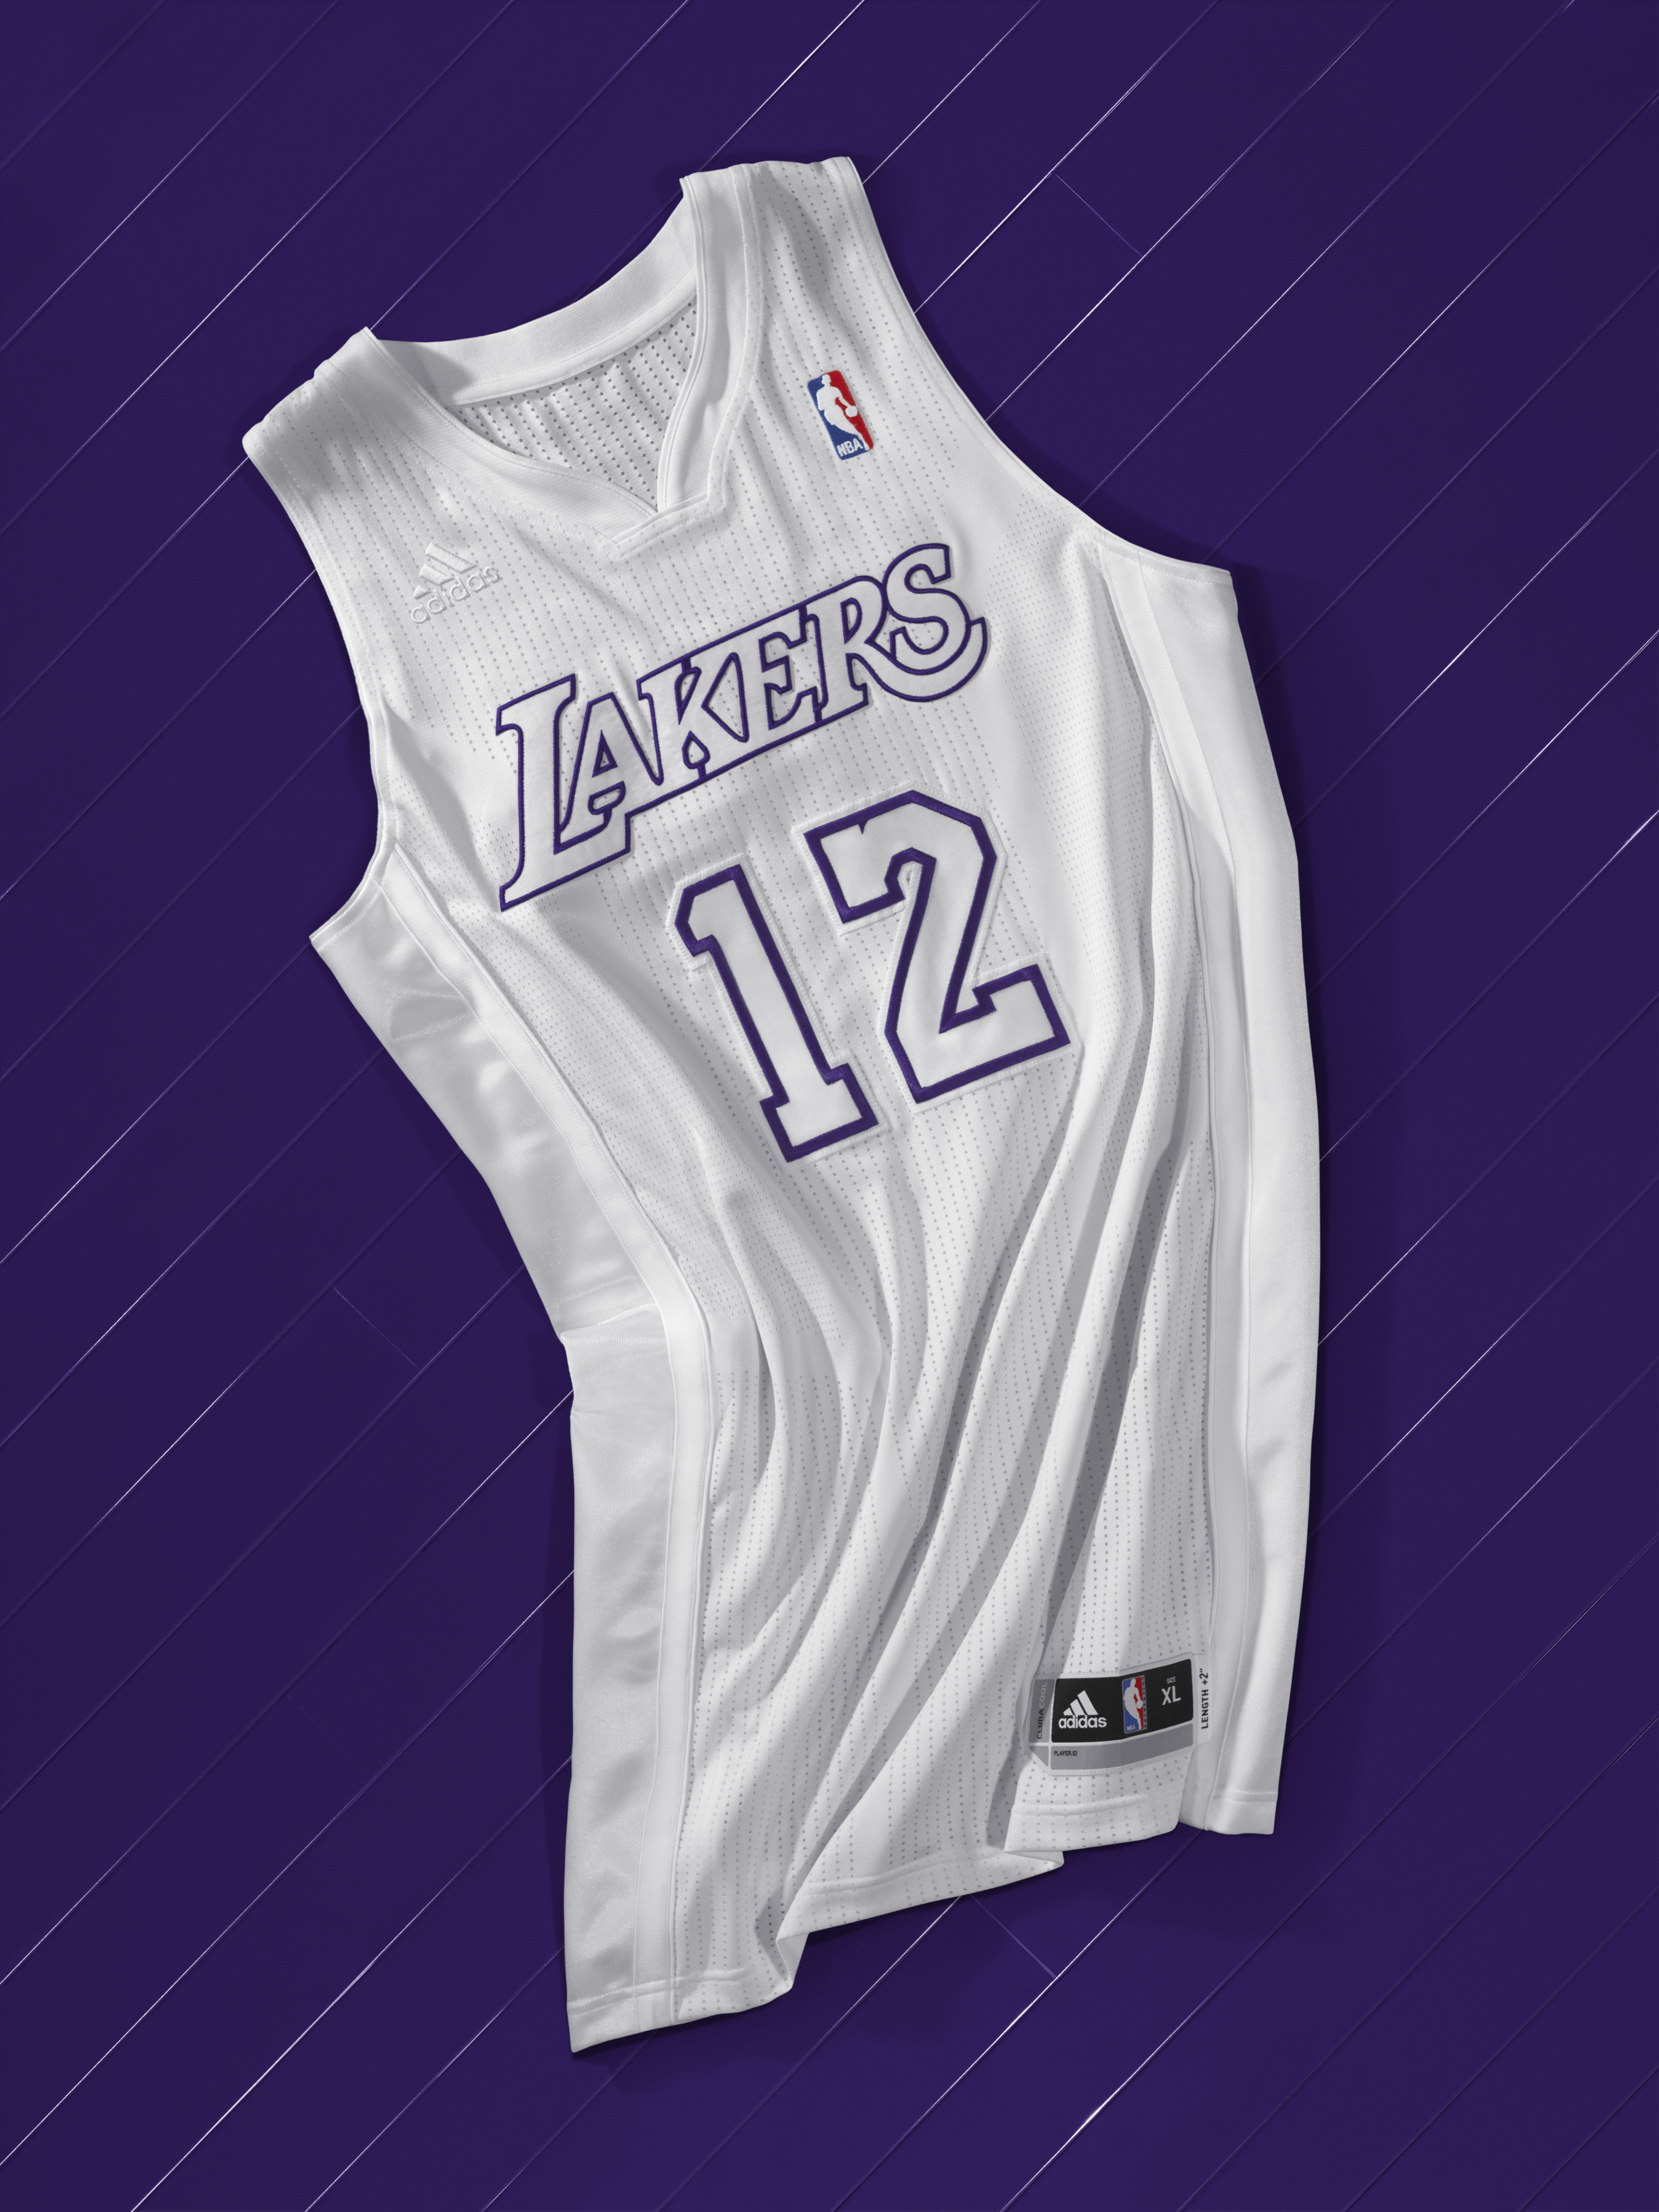 Lakers Christmas jerseys officially unveiled - SB Nation Los Angeles